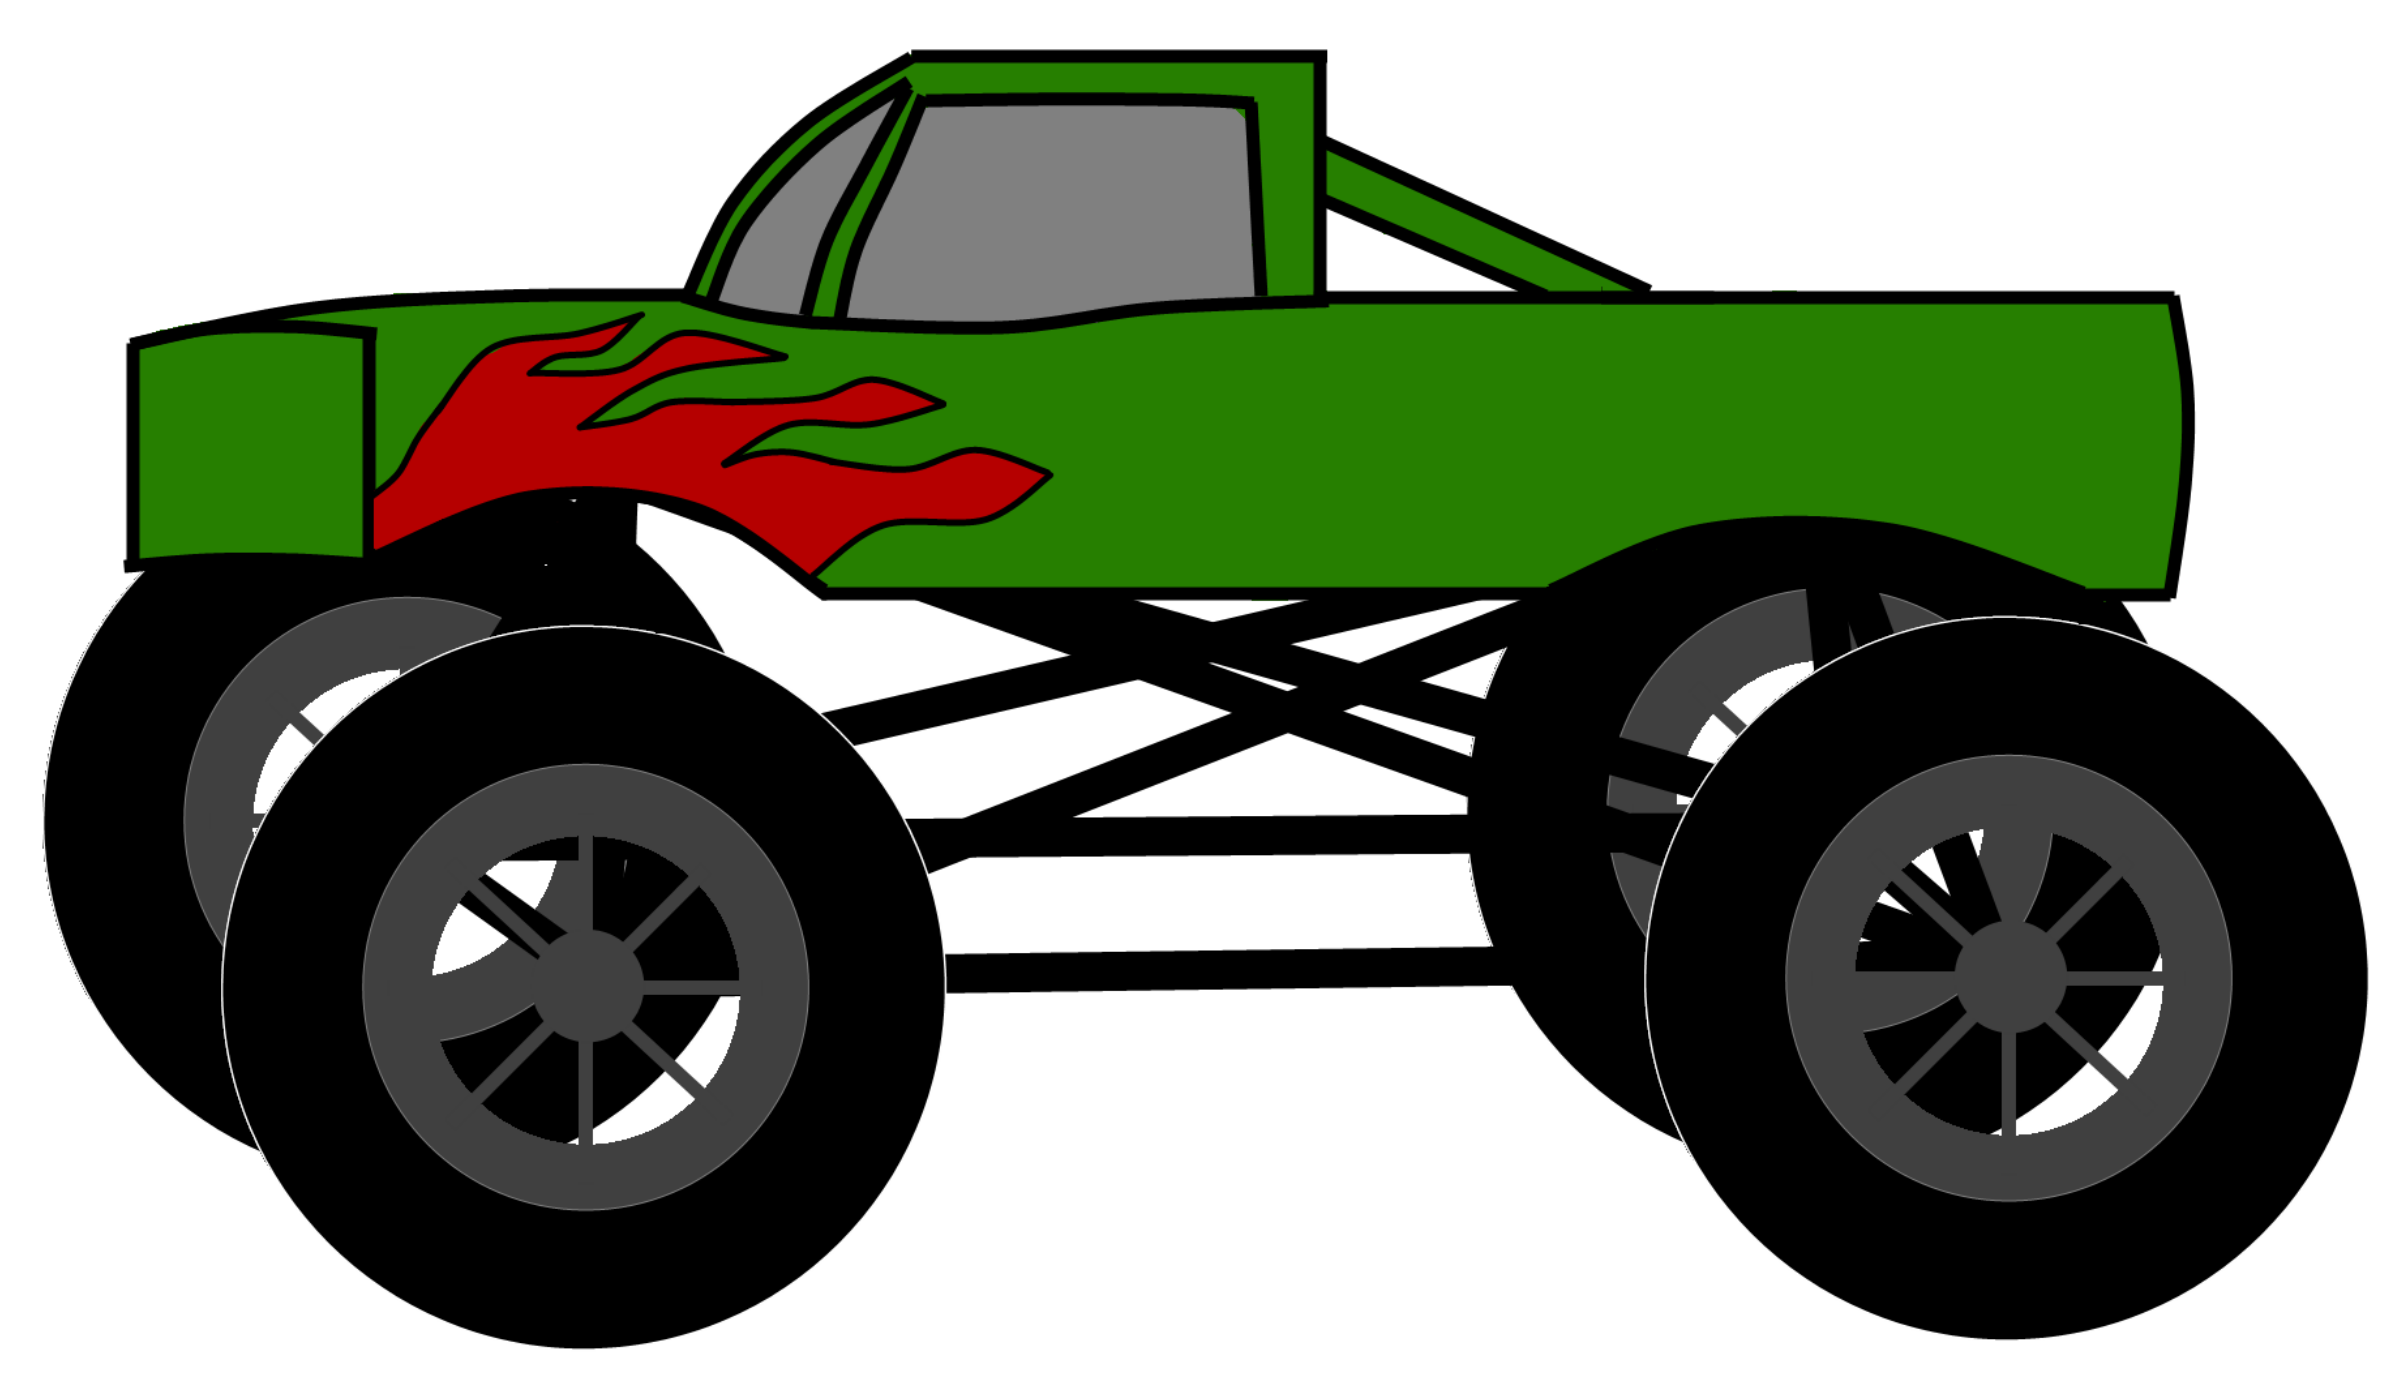 Monster truck clip art pictures free clipart images image.